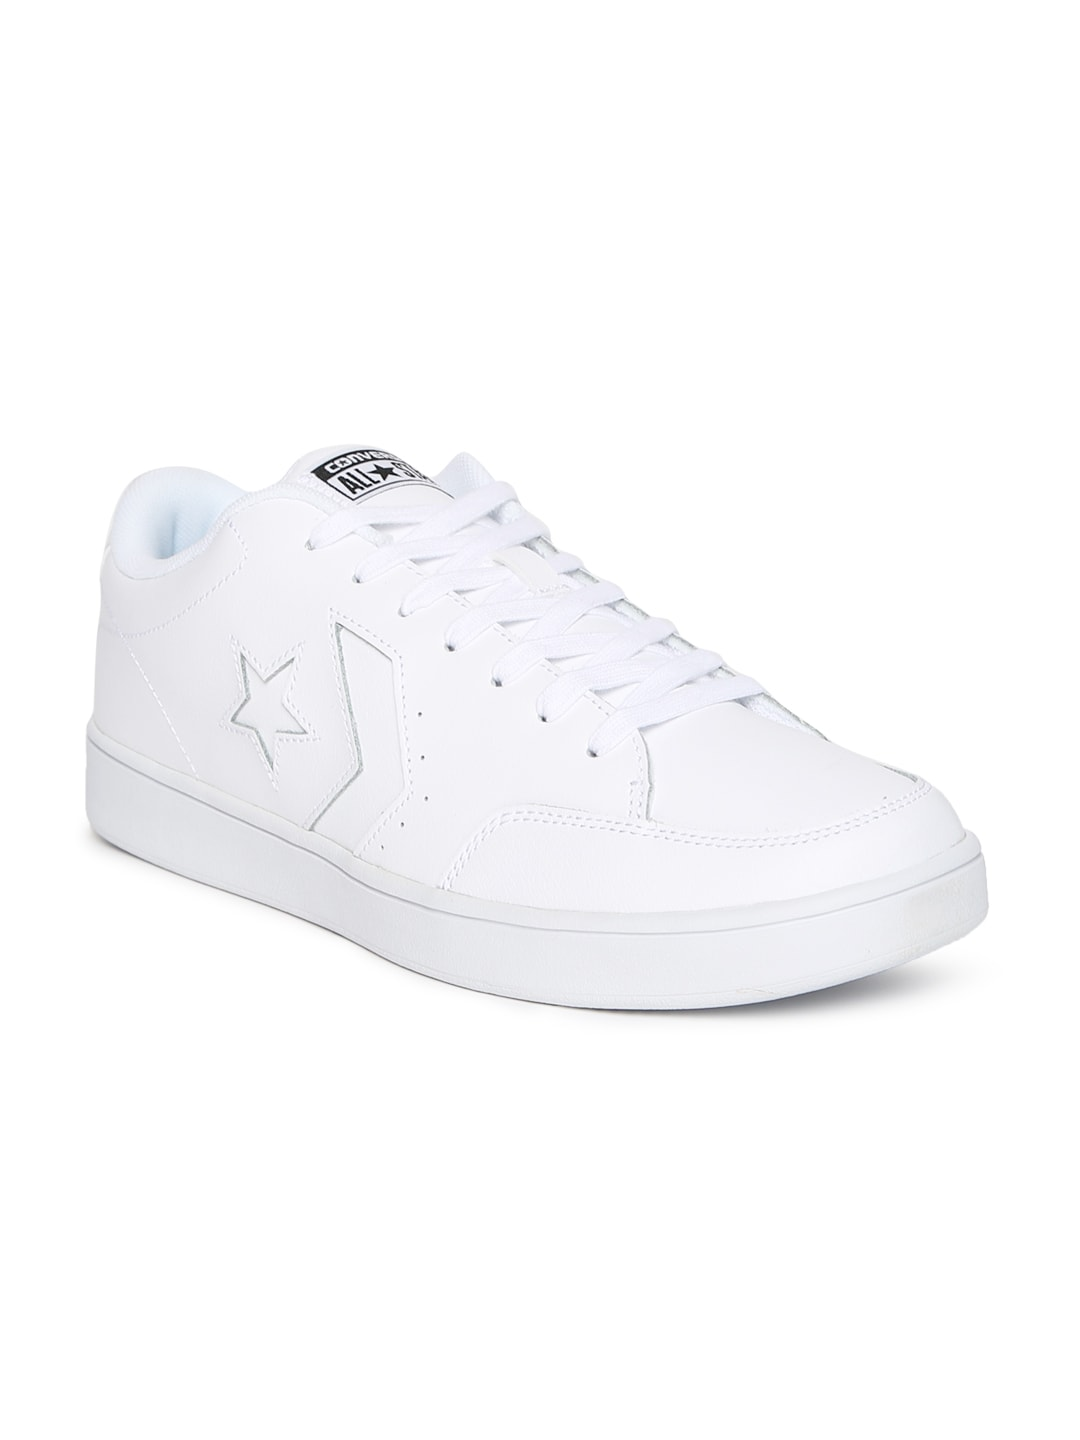 bcd4716ae881 Converse - Buy Converse Shoes   Clothing Online